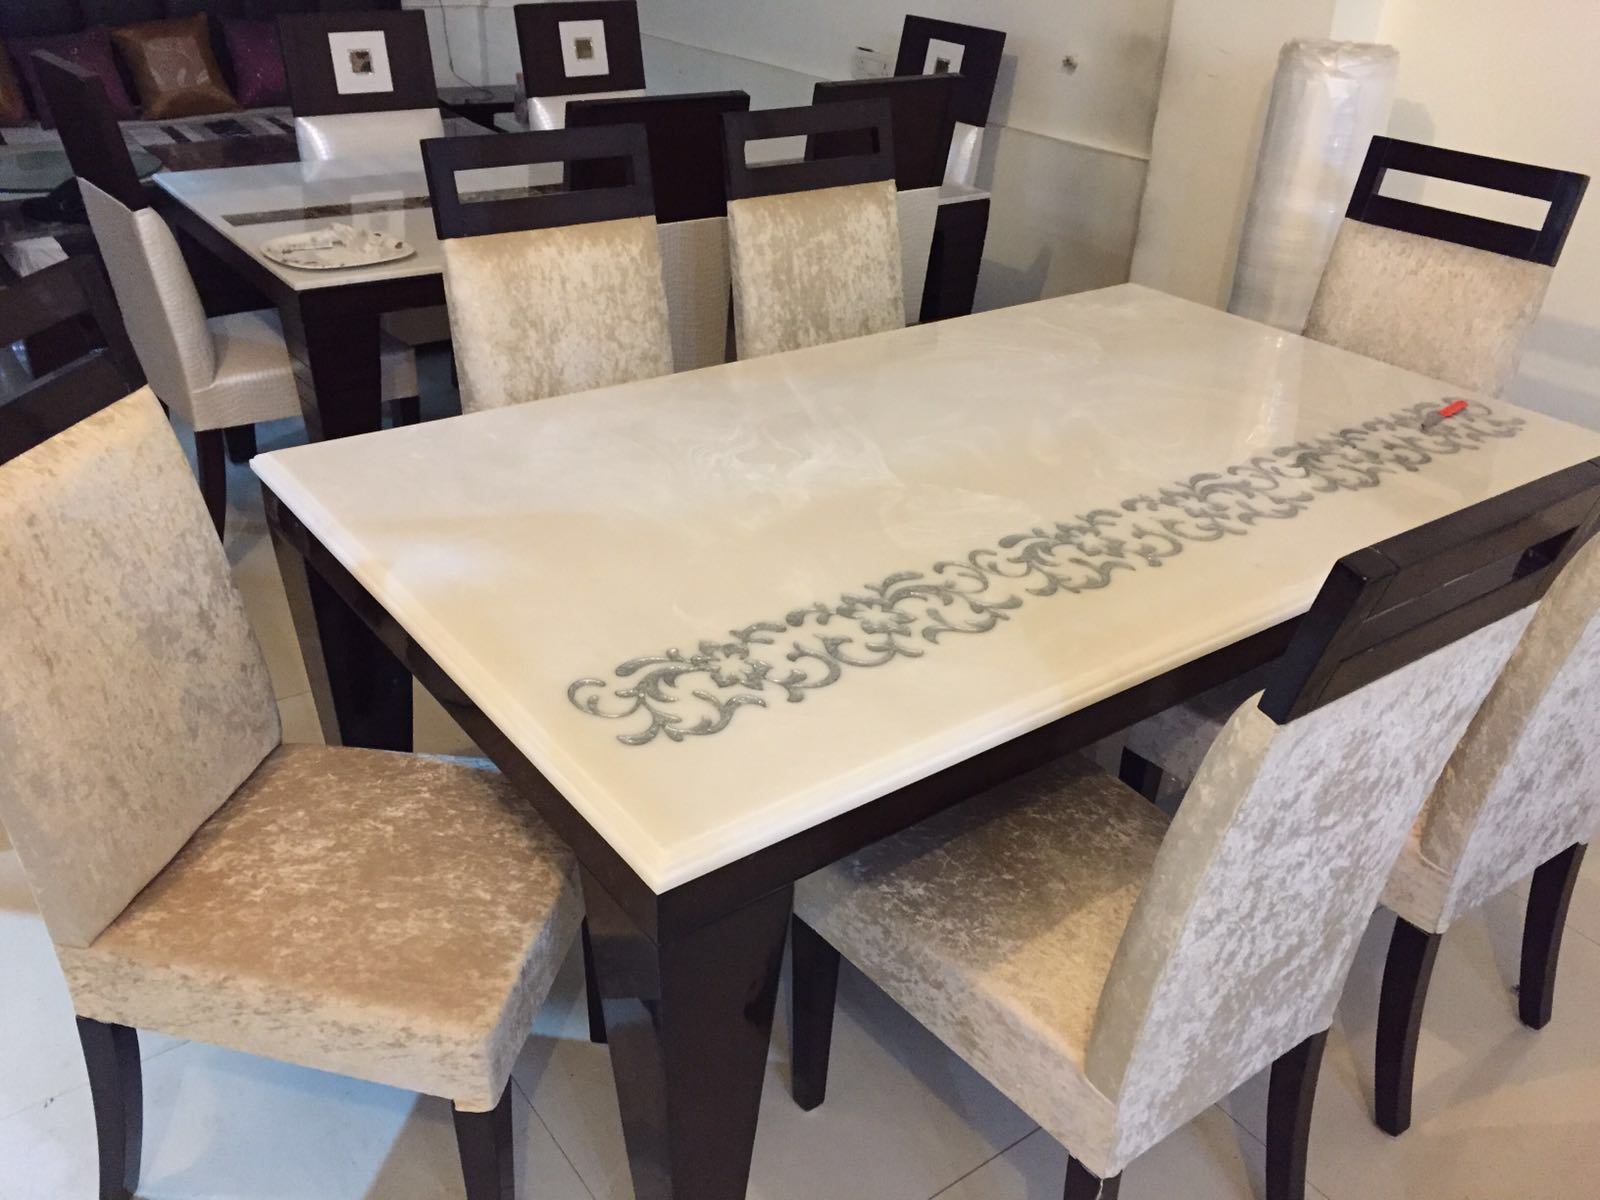 White onyx dining table top for residential project image